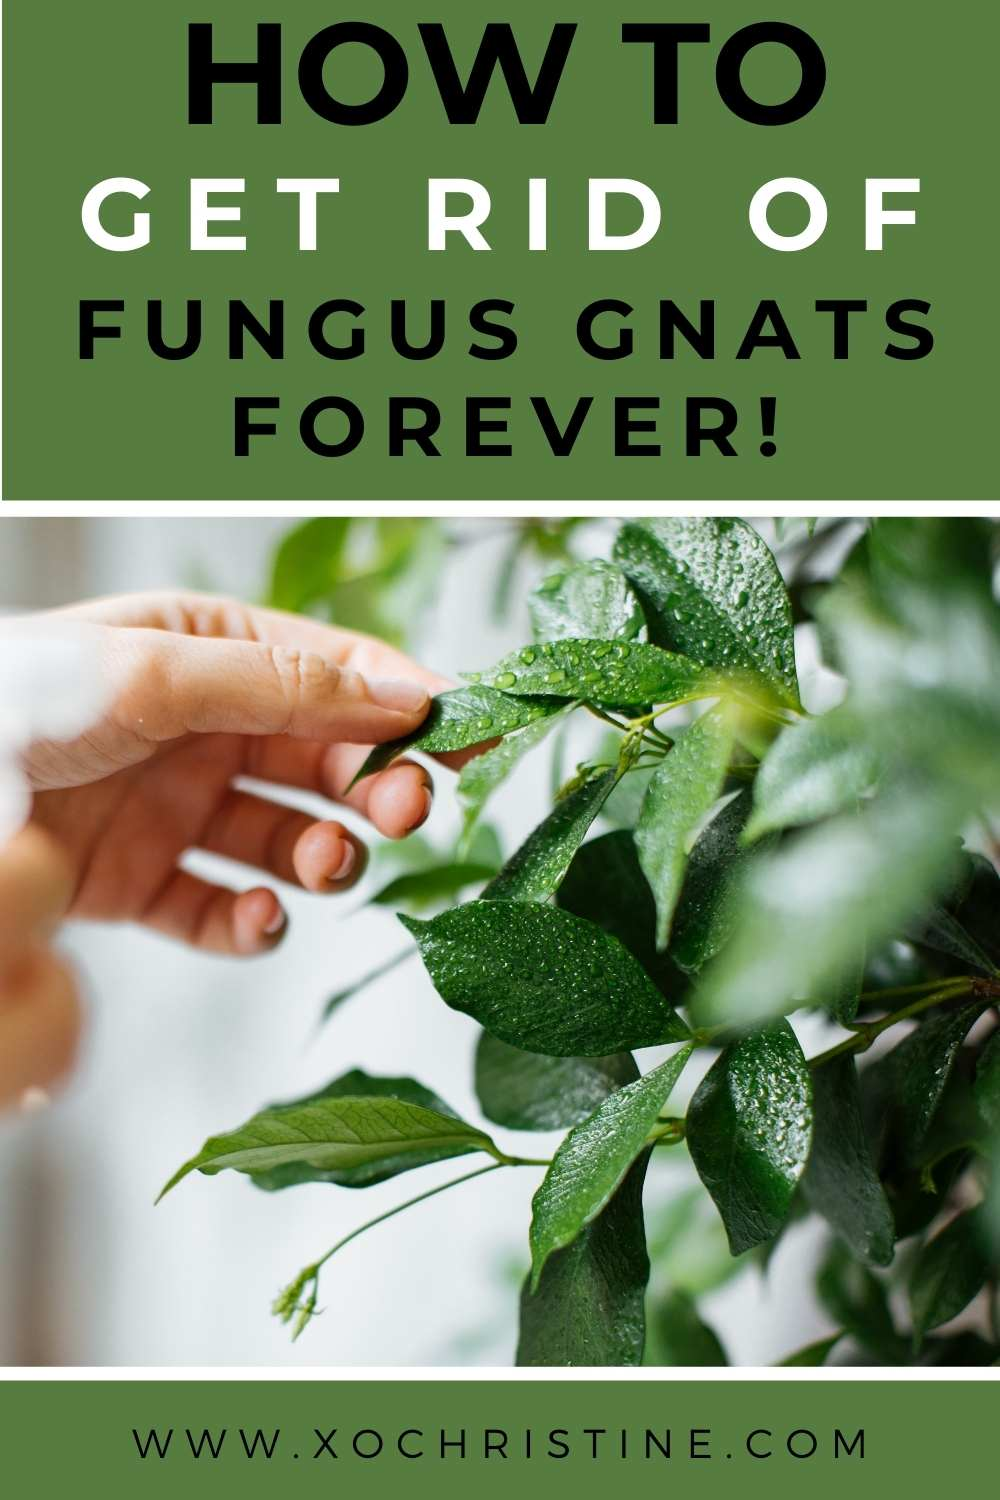 How to get rid of fungus gnats forever!